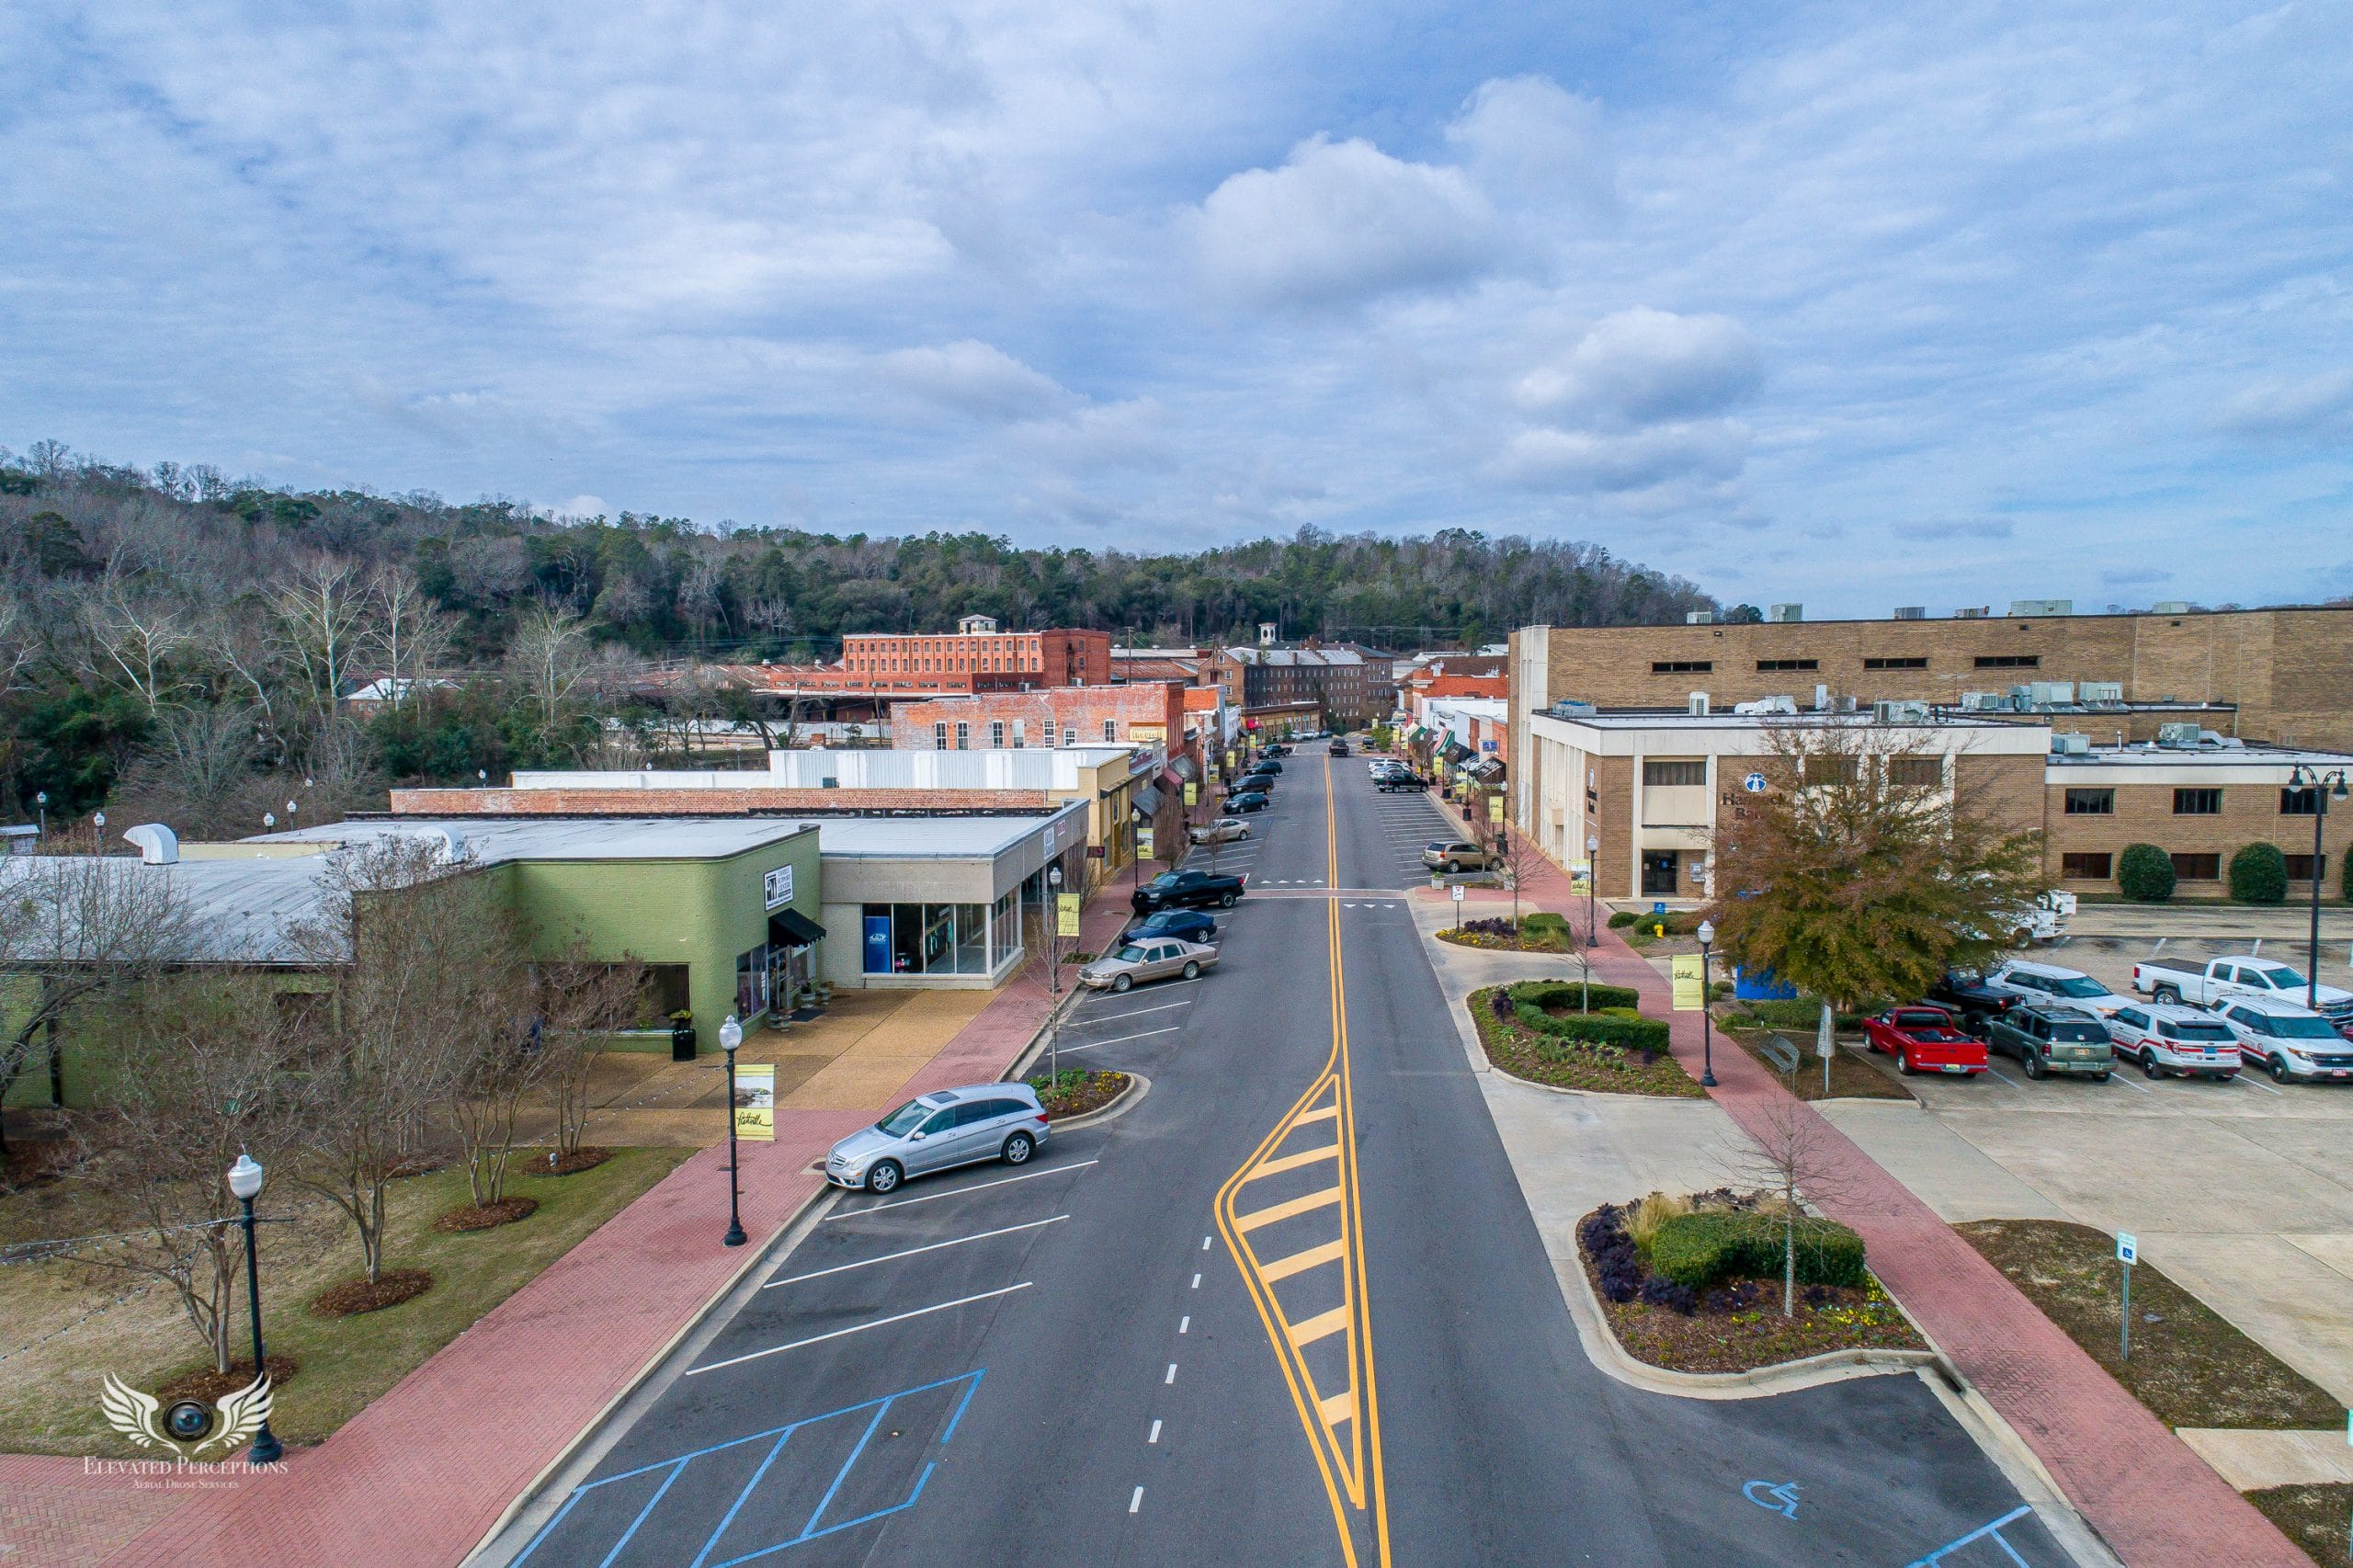 Downtown Prattville Alabama